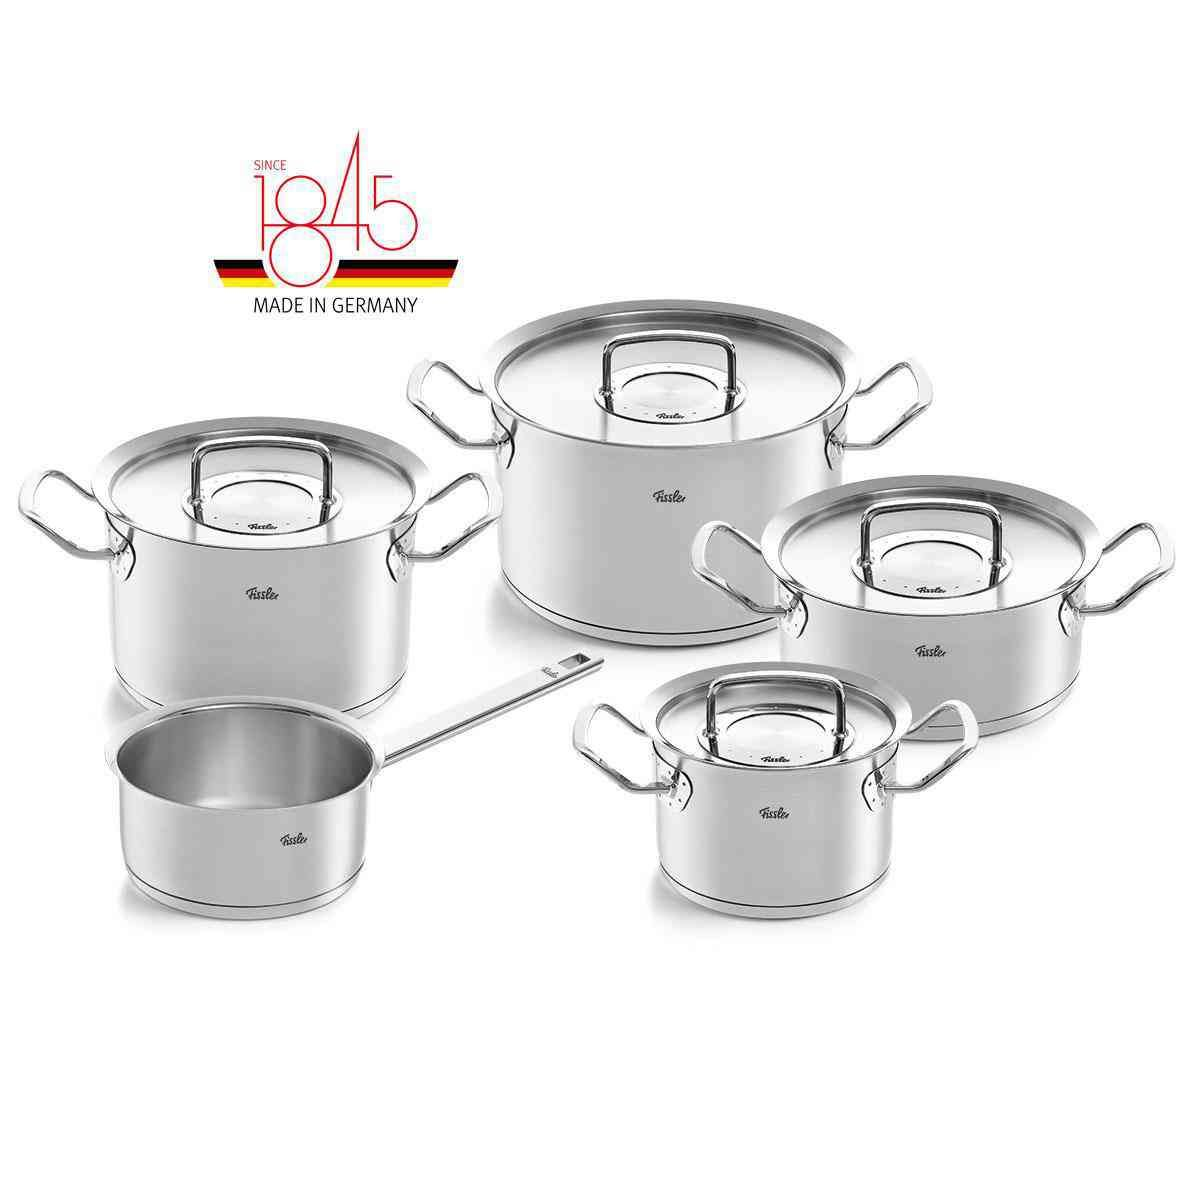 pure-profi collection 9-Piece Stainless Steel Cookware Set